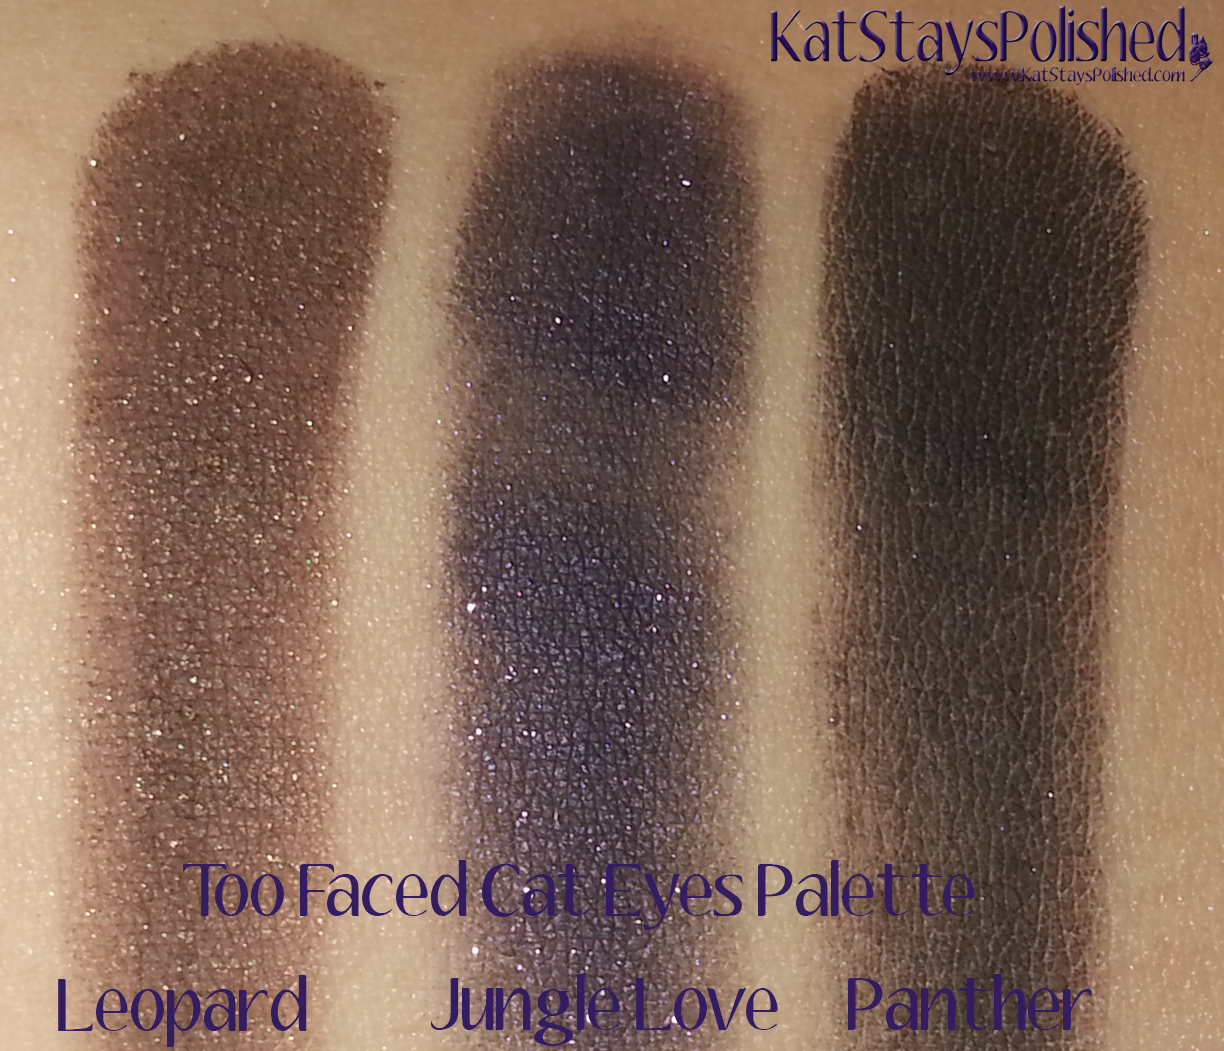 Too Faced Cat Eyes Palette - Leopard, Jungle Love, Panther | Kat Stays Polished